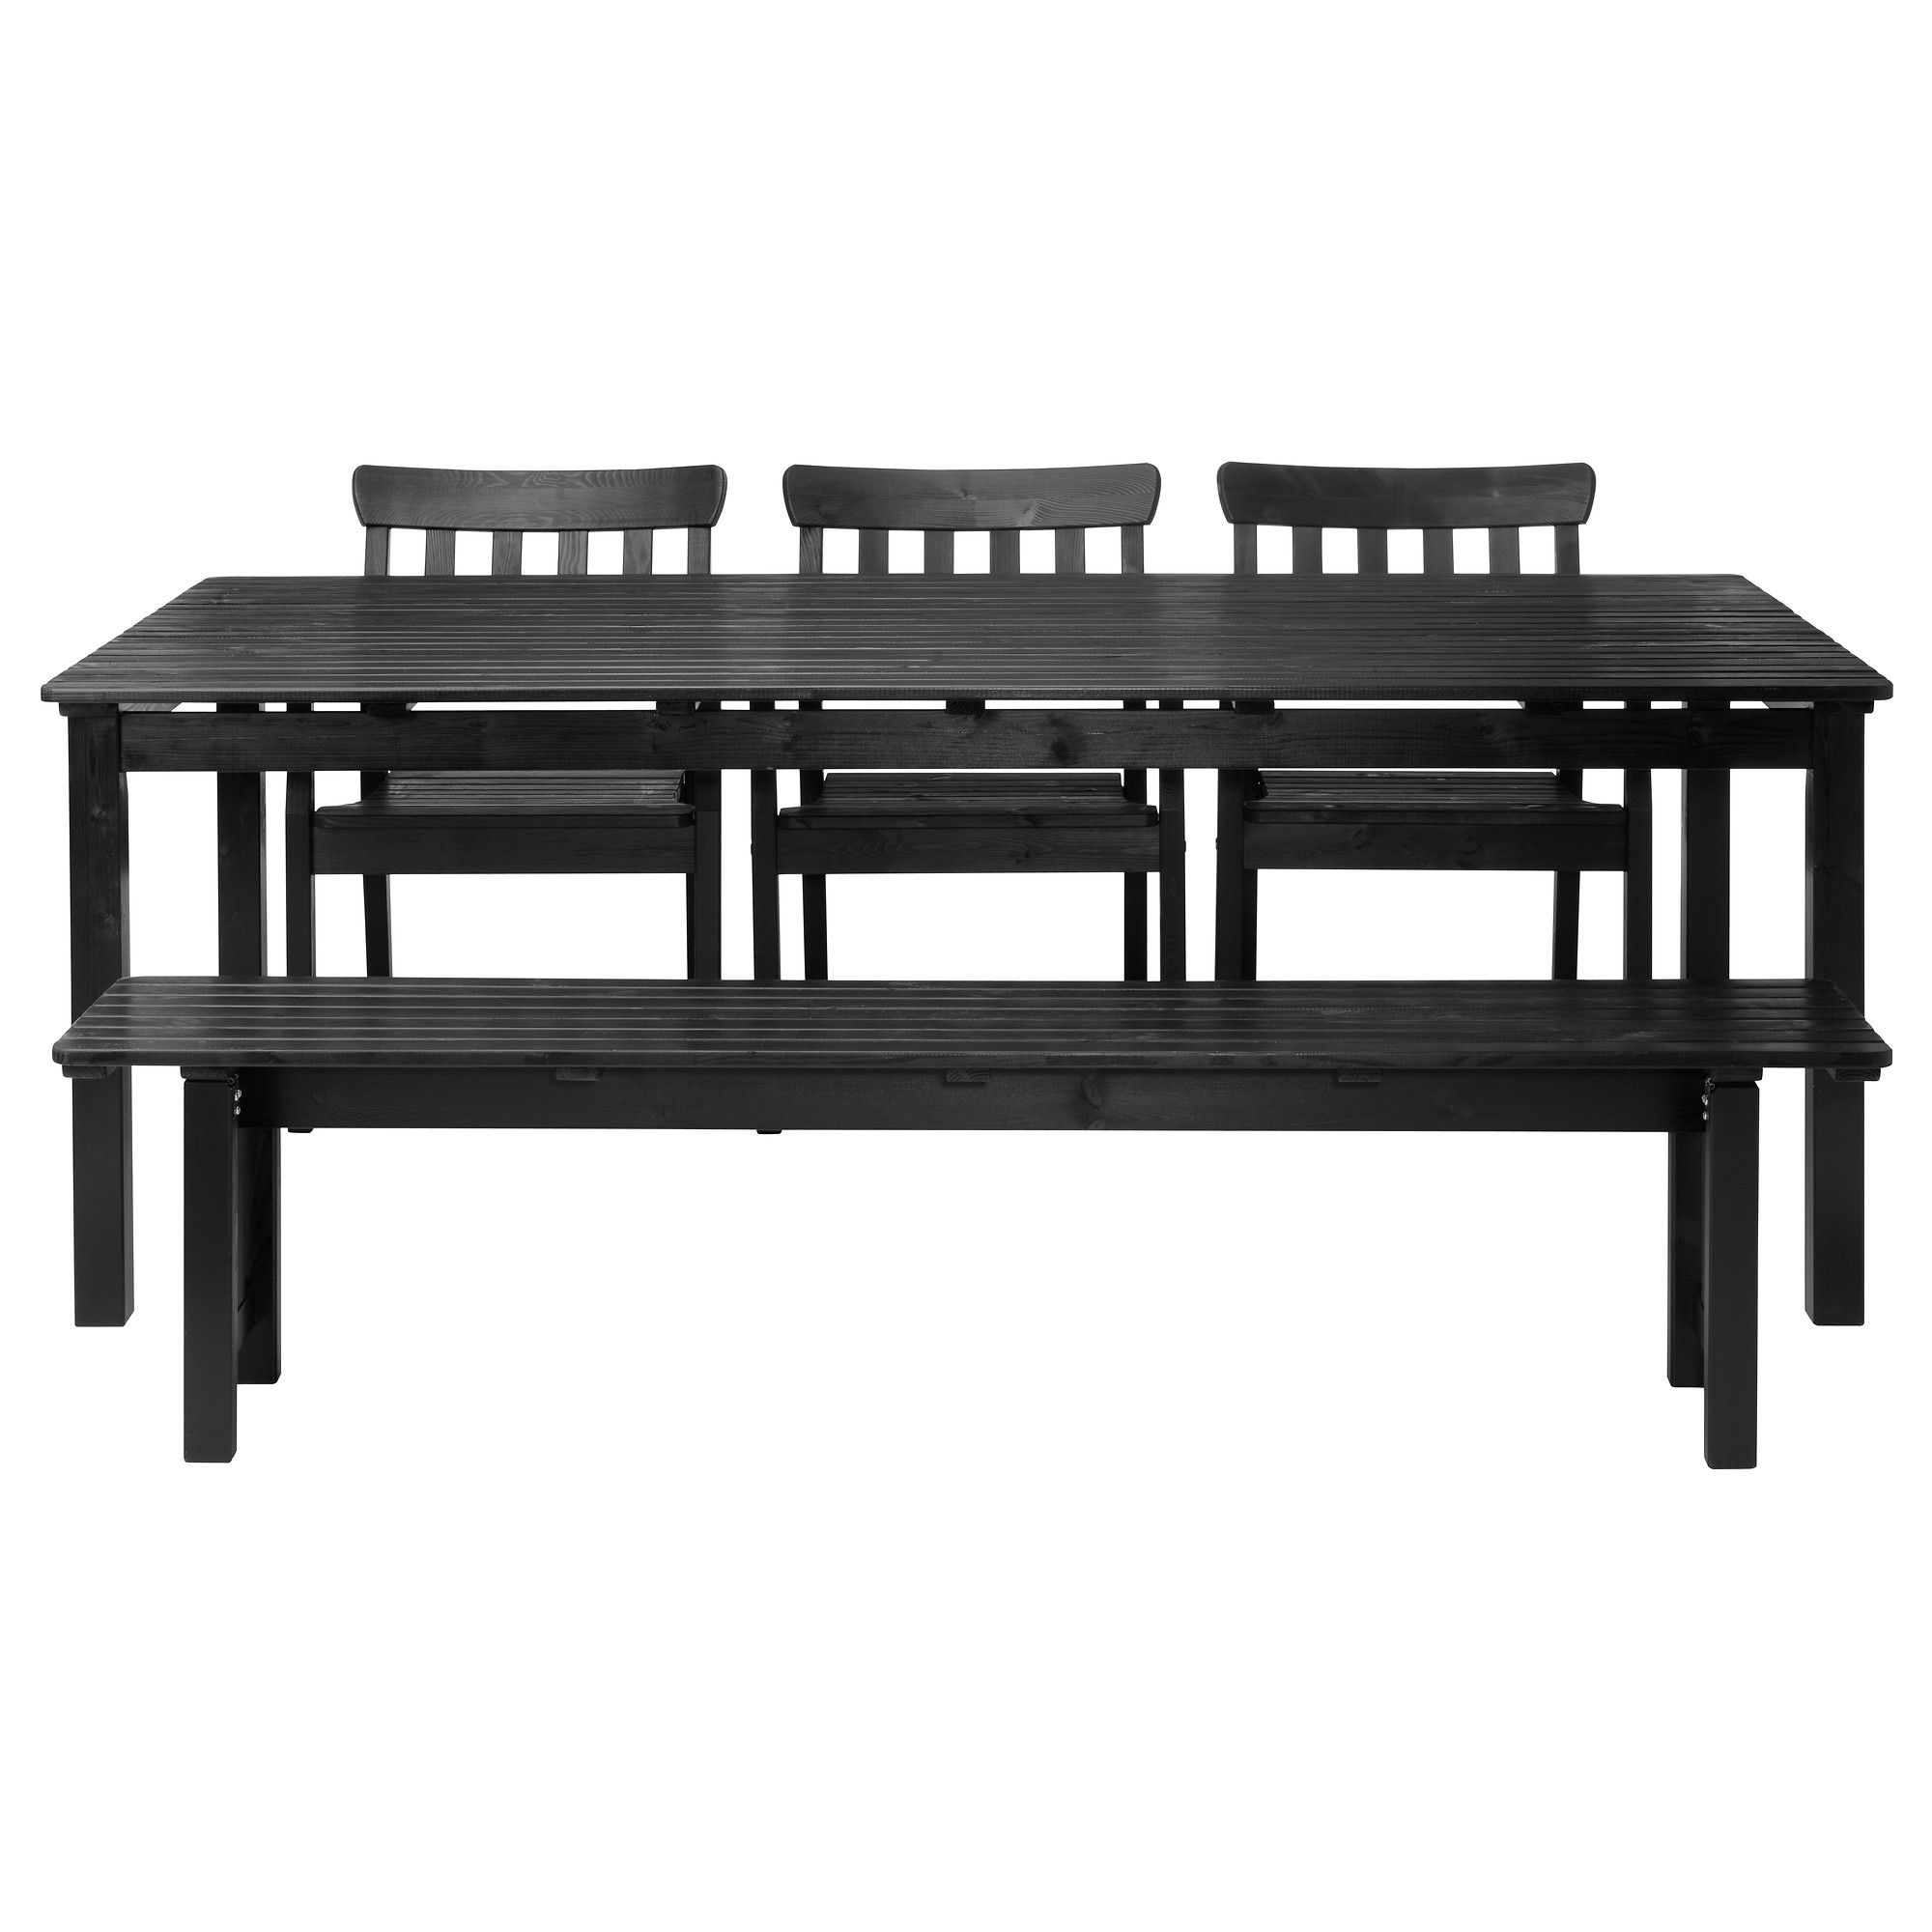 ngs table banc et 3 chaises brun noir ikea summer pinterest bancs ikea et brun. Black Bedroom Furniture Sets. Home Design Ideas